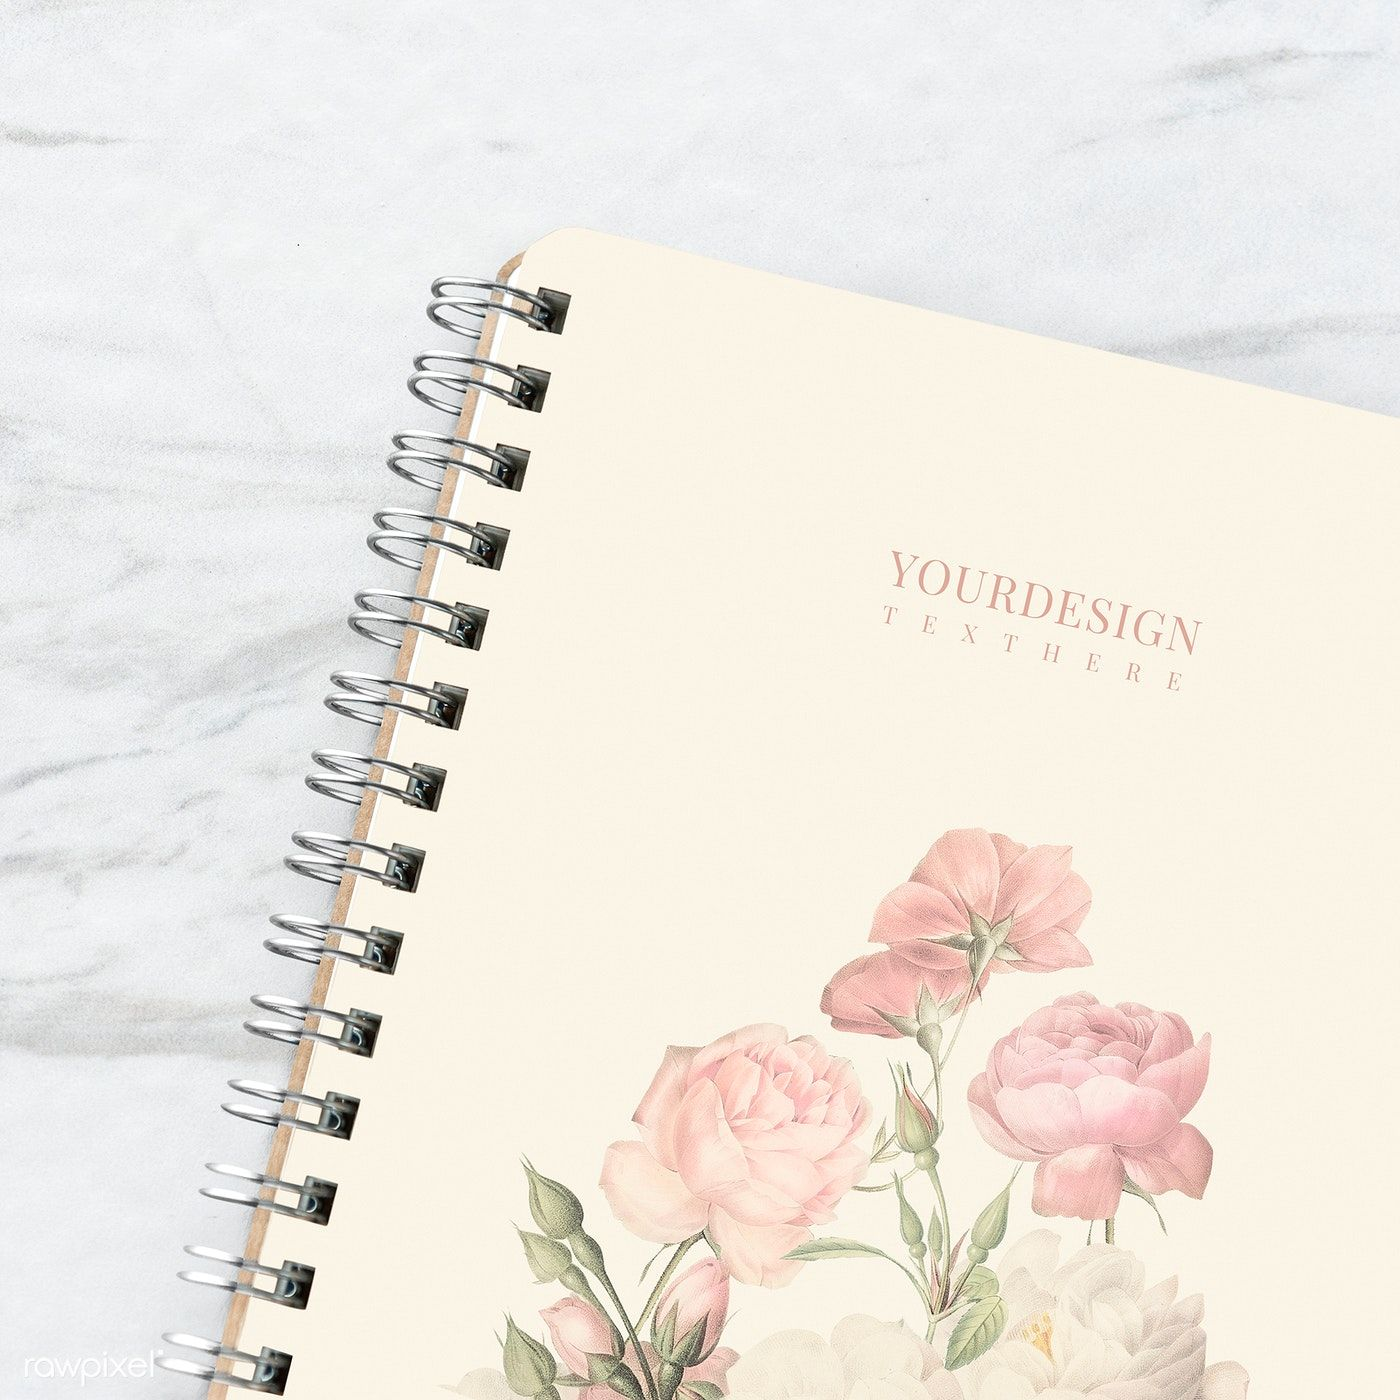 Download premium image of Hand drawn sketch on a notebook